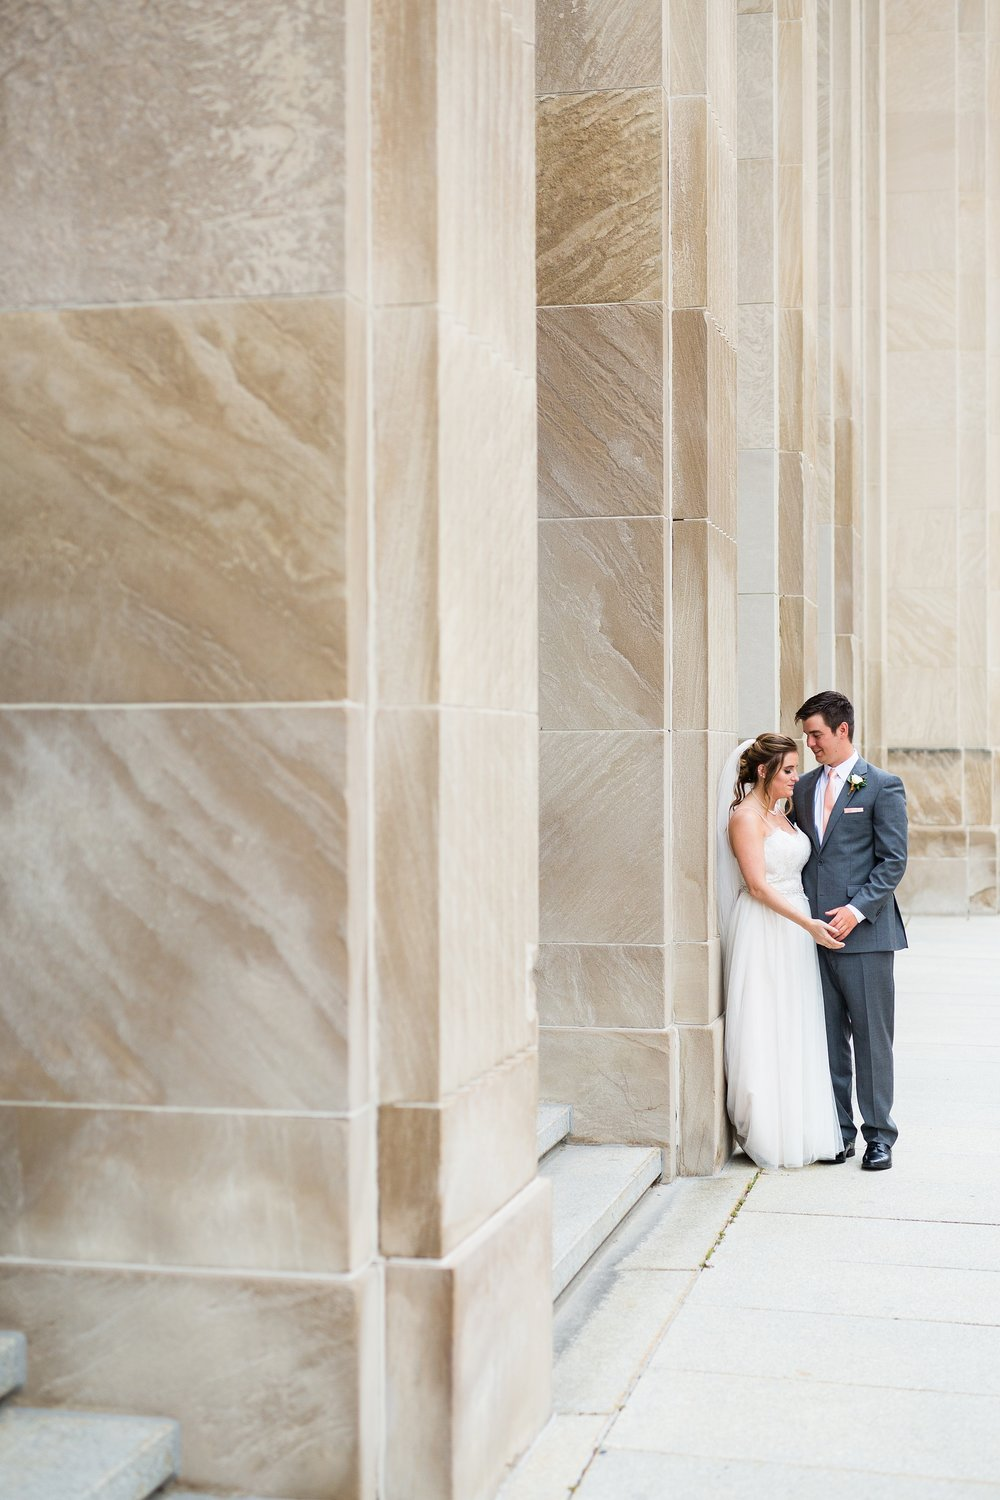 Meghan_Drew_Grand_Rapids_Cheney_place_Wedding035.JPG